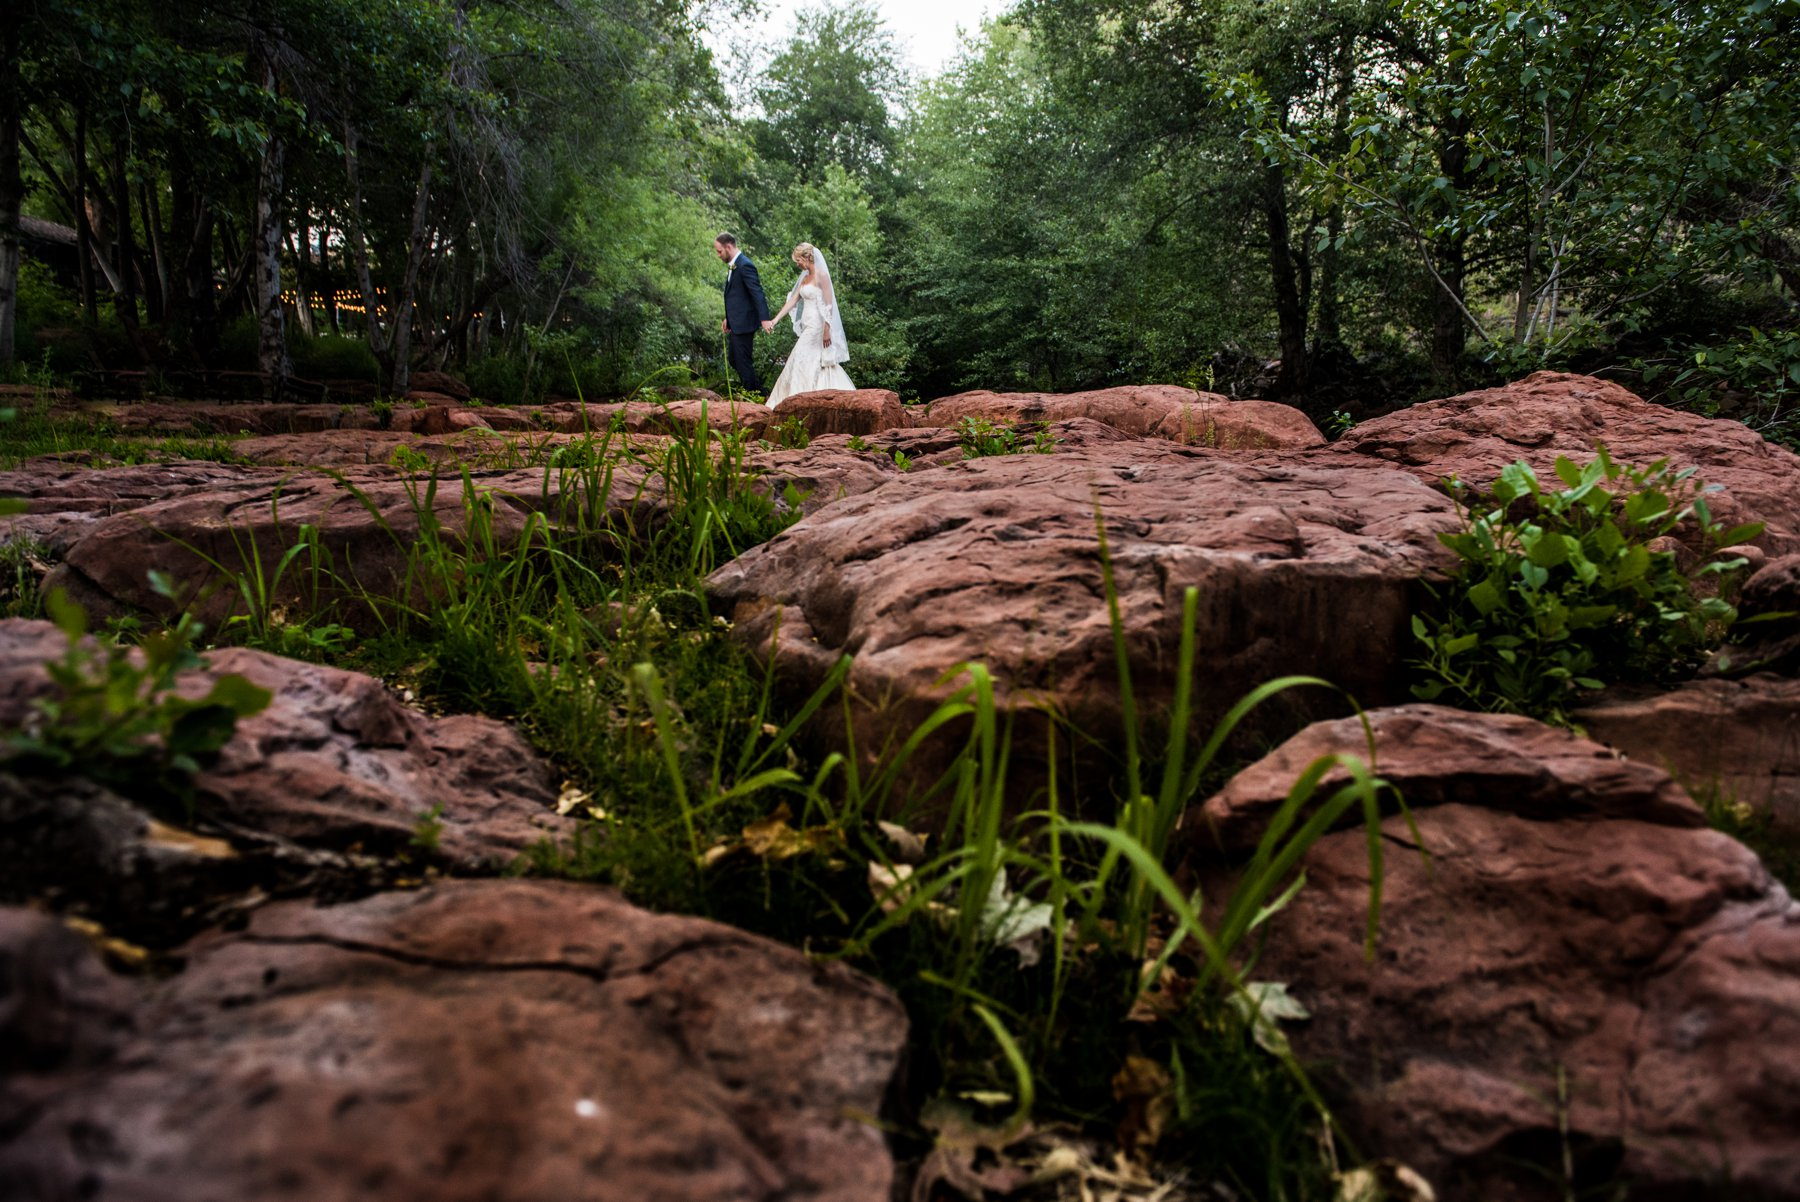 0573-CR-lauberge-sedona-wedding-photo-©2016ther2studio